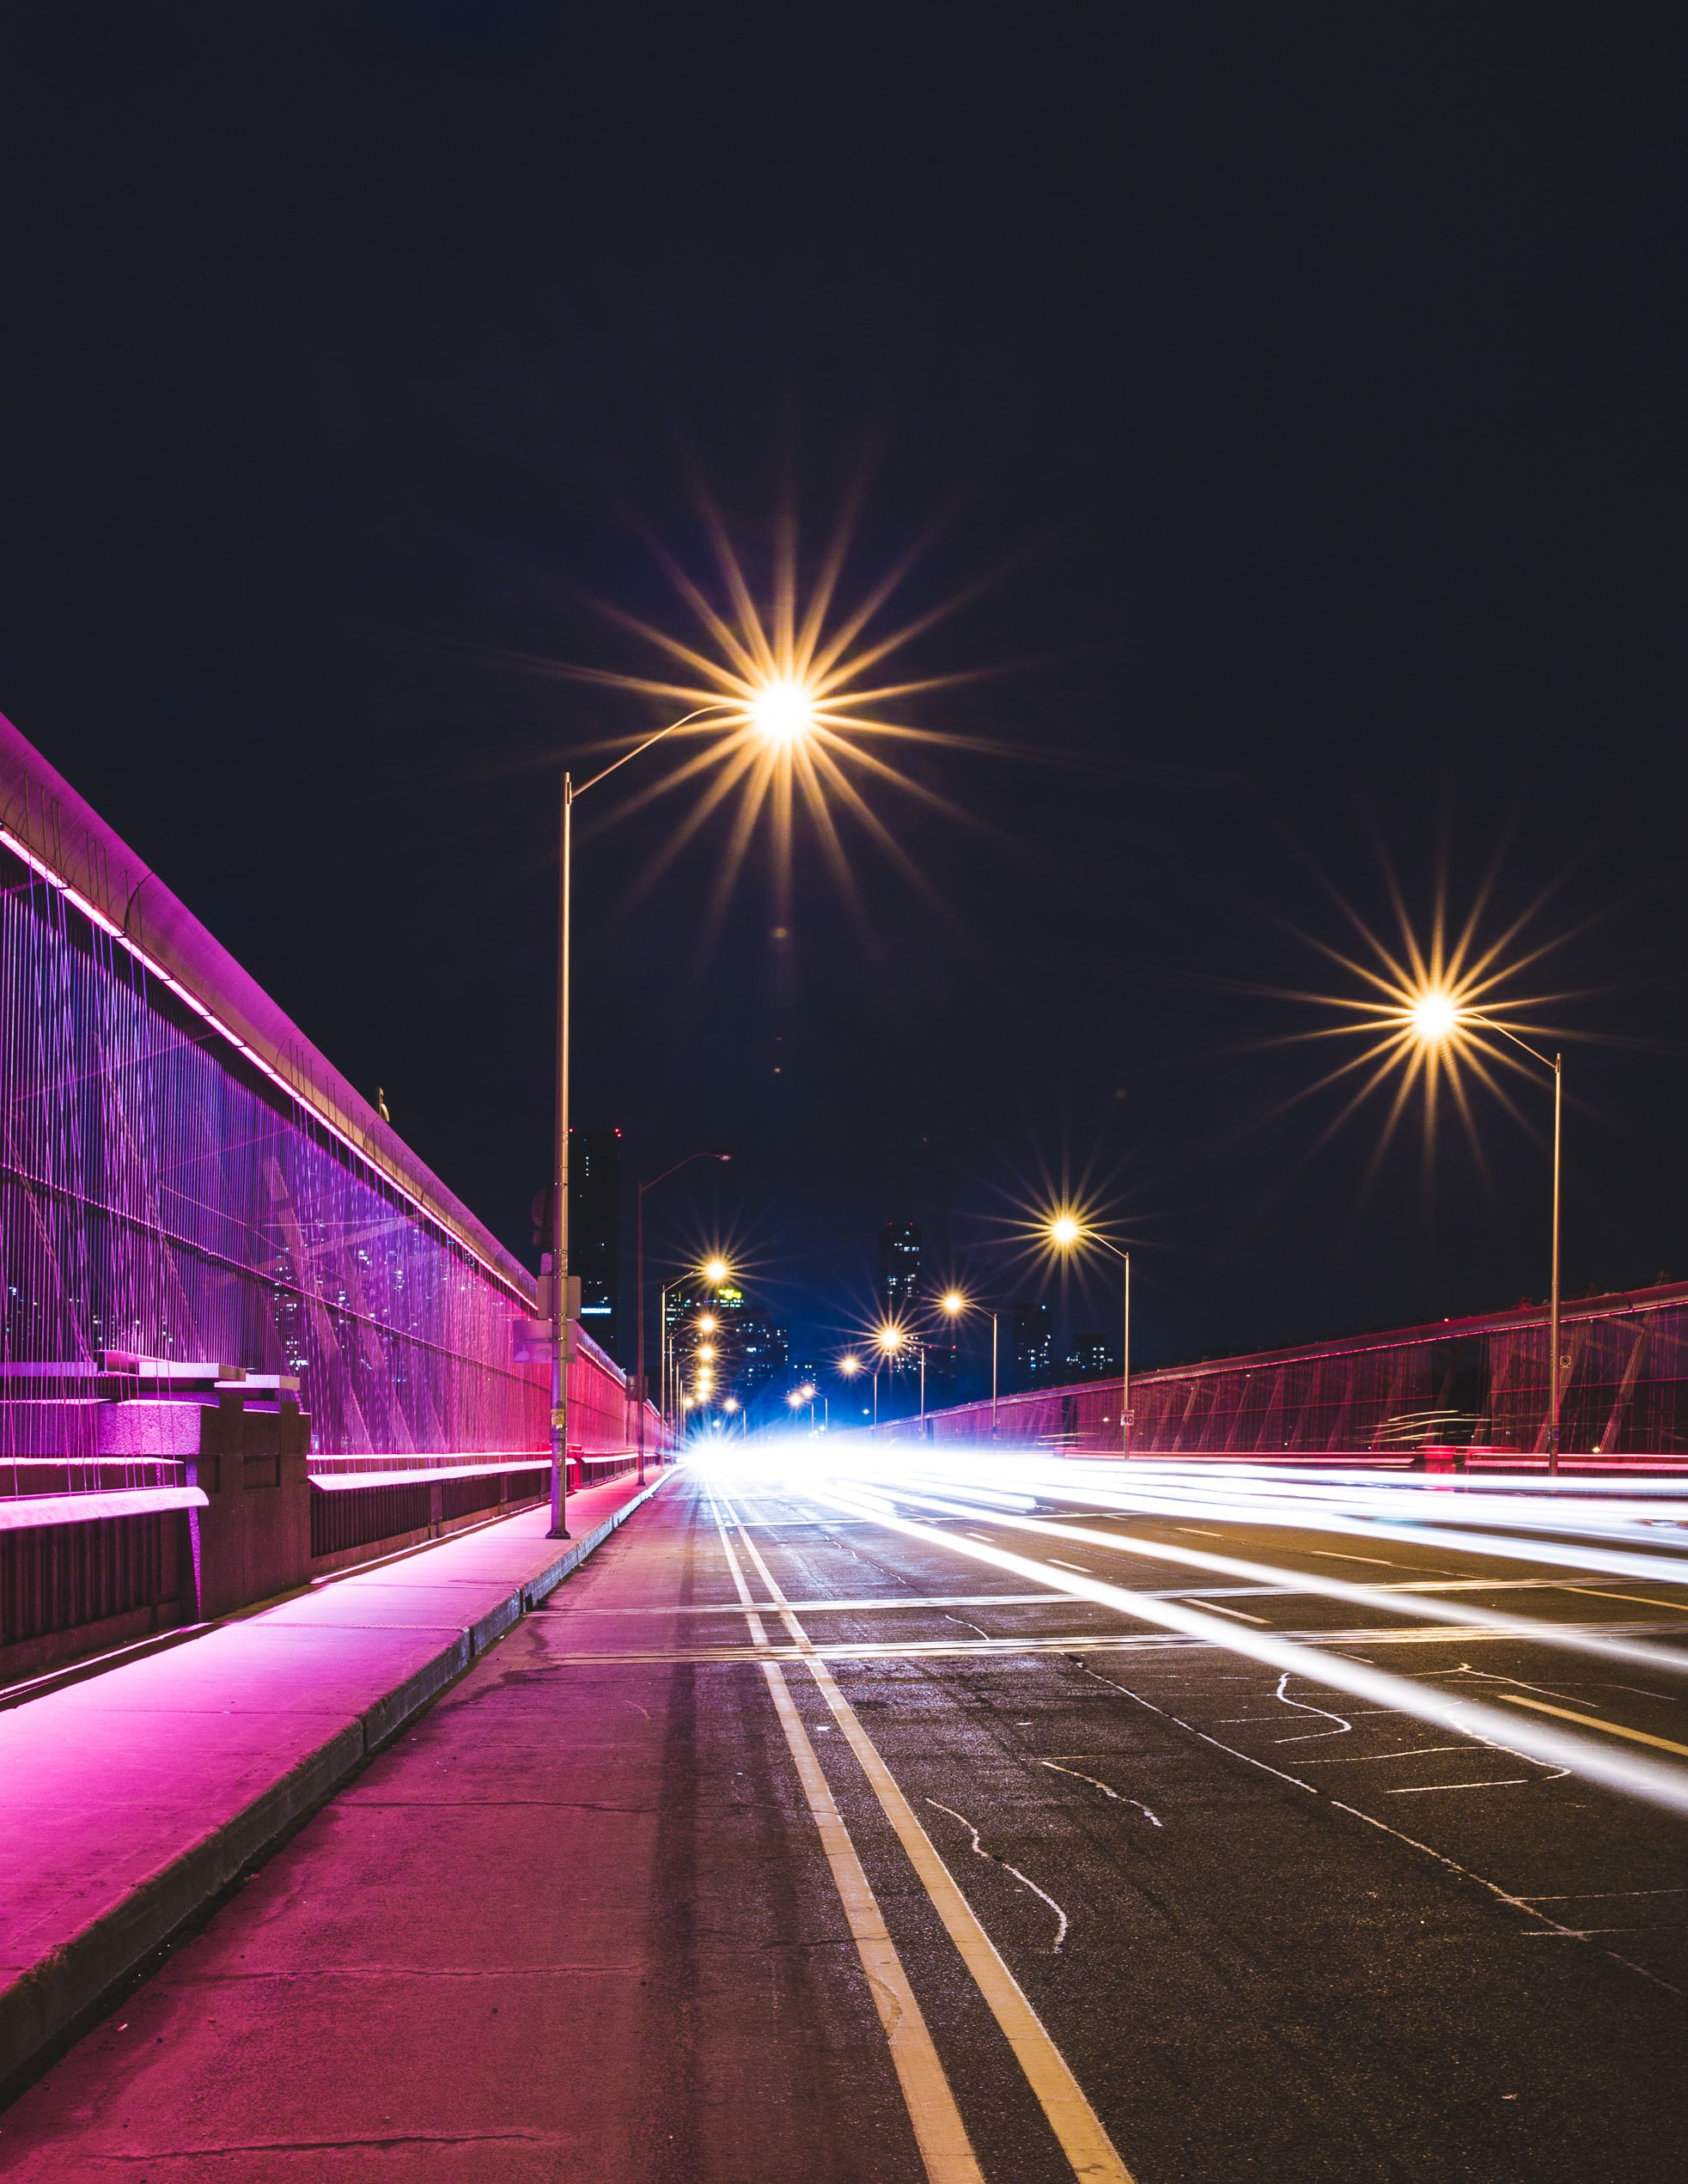 A simple photo featuring traffic light trails and street lamps on Toronto's Bloor Street East